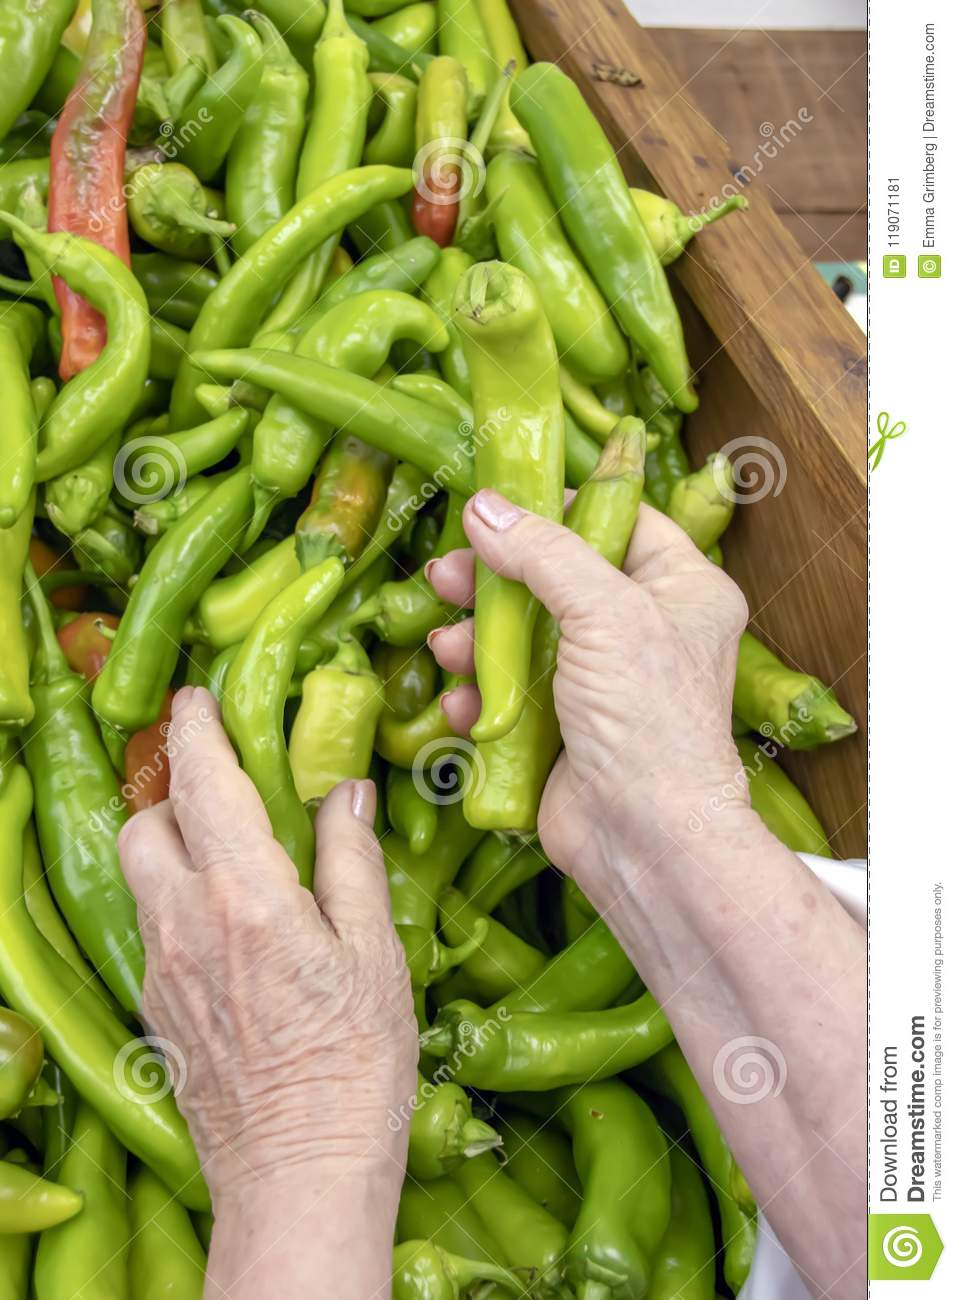 Hands of an elderly woman choosing a pepper